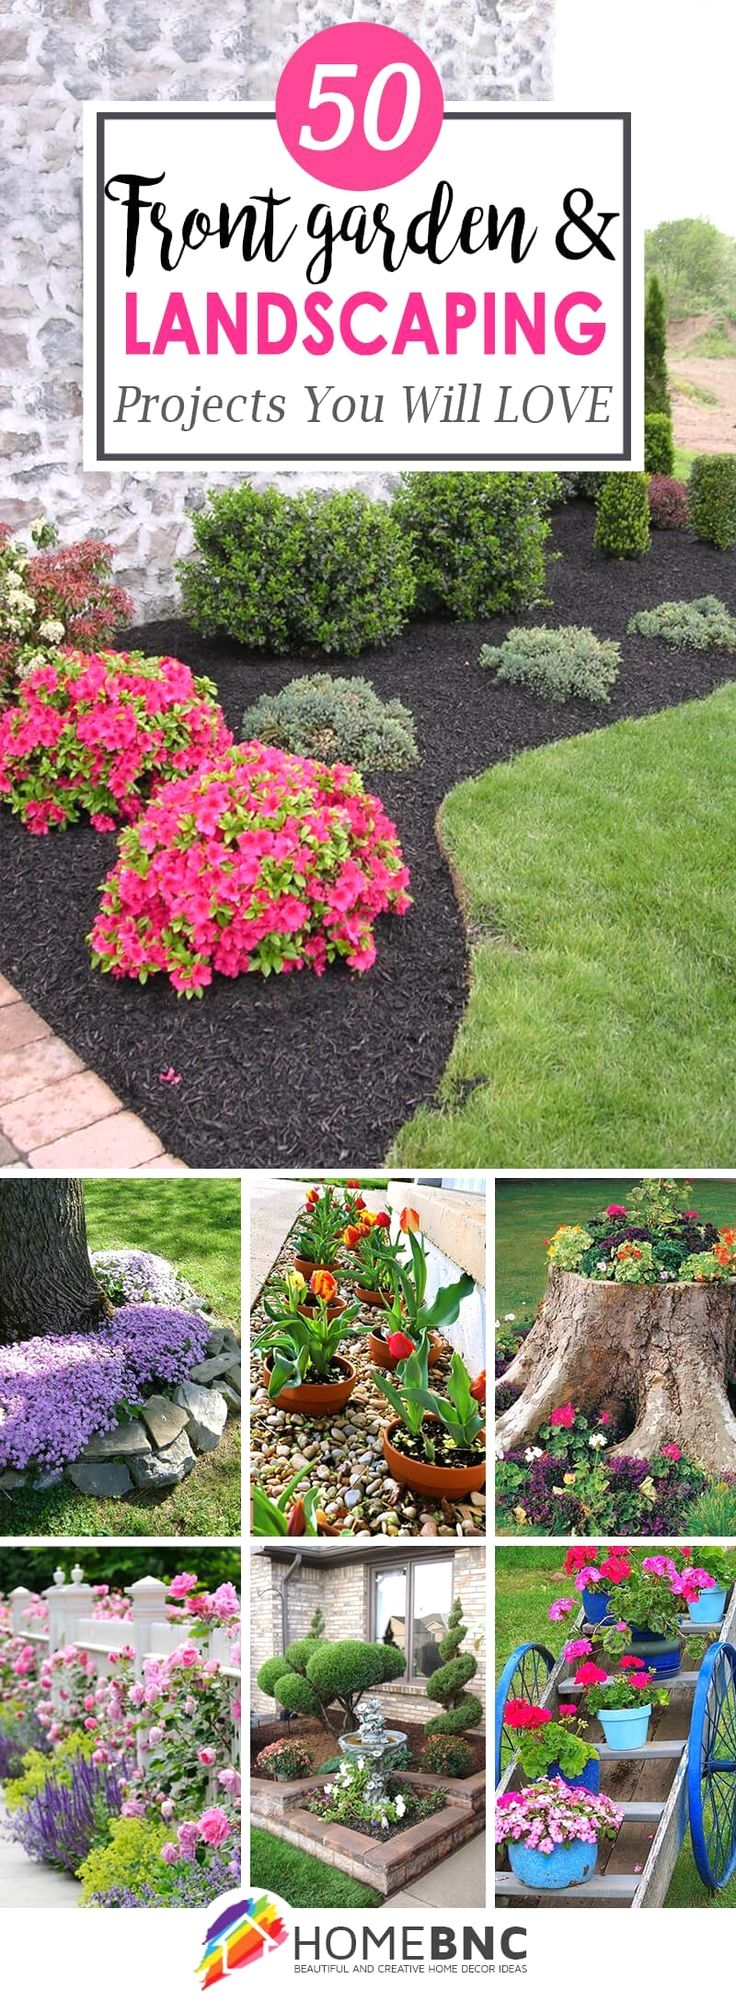 Front garden features  Gorgeous front garden and landscaping ideas that help highlight the